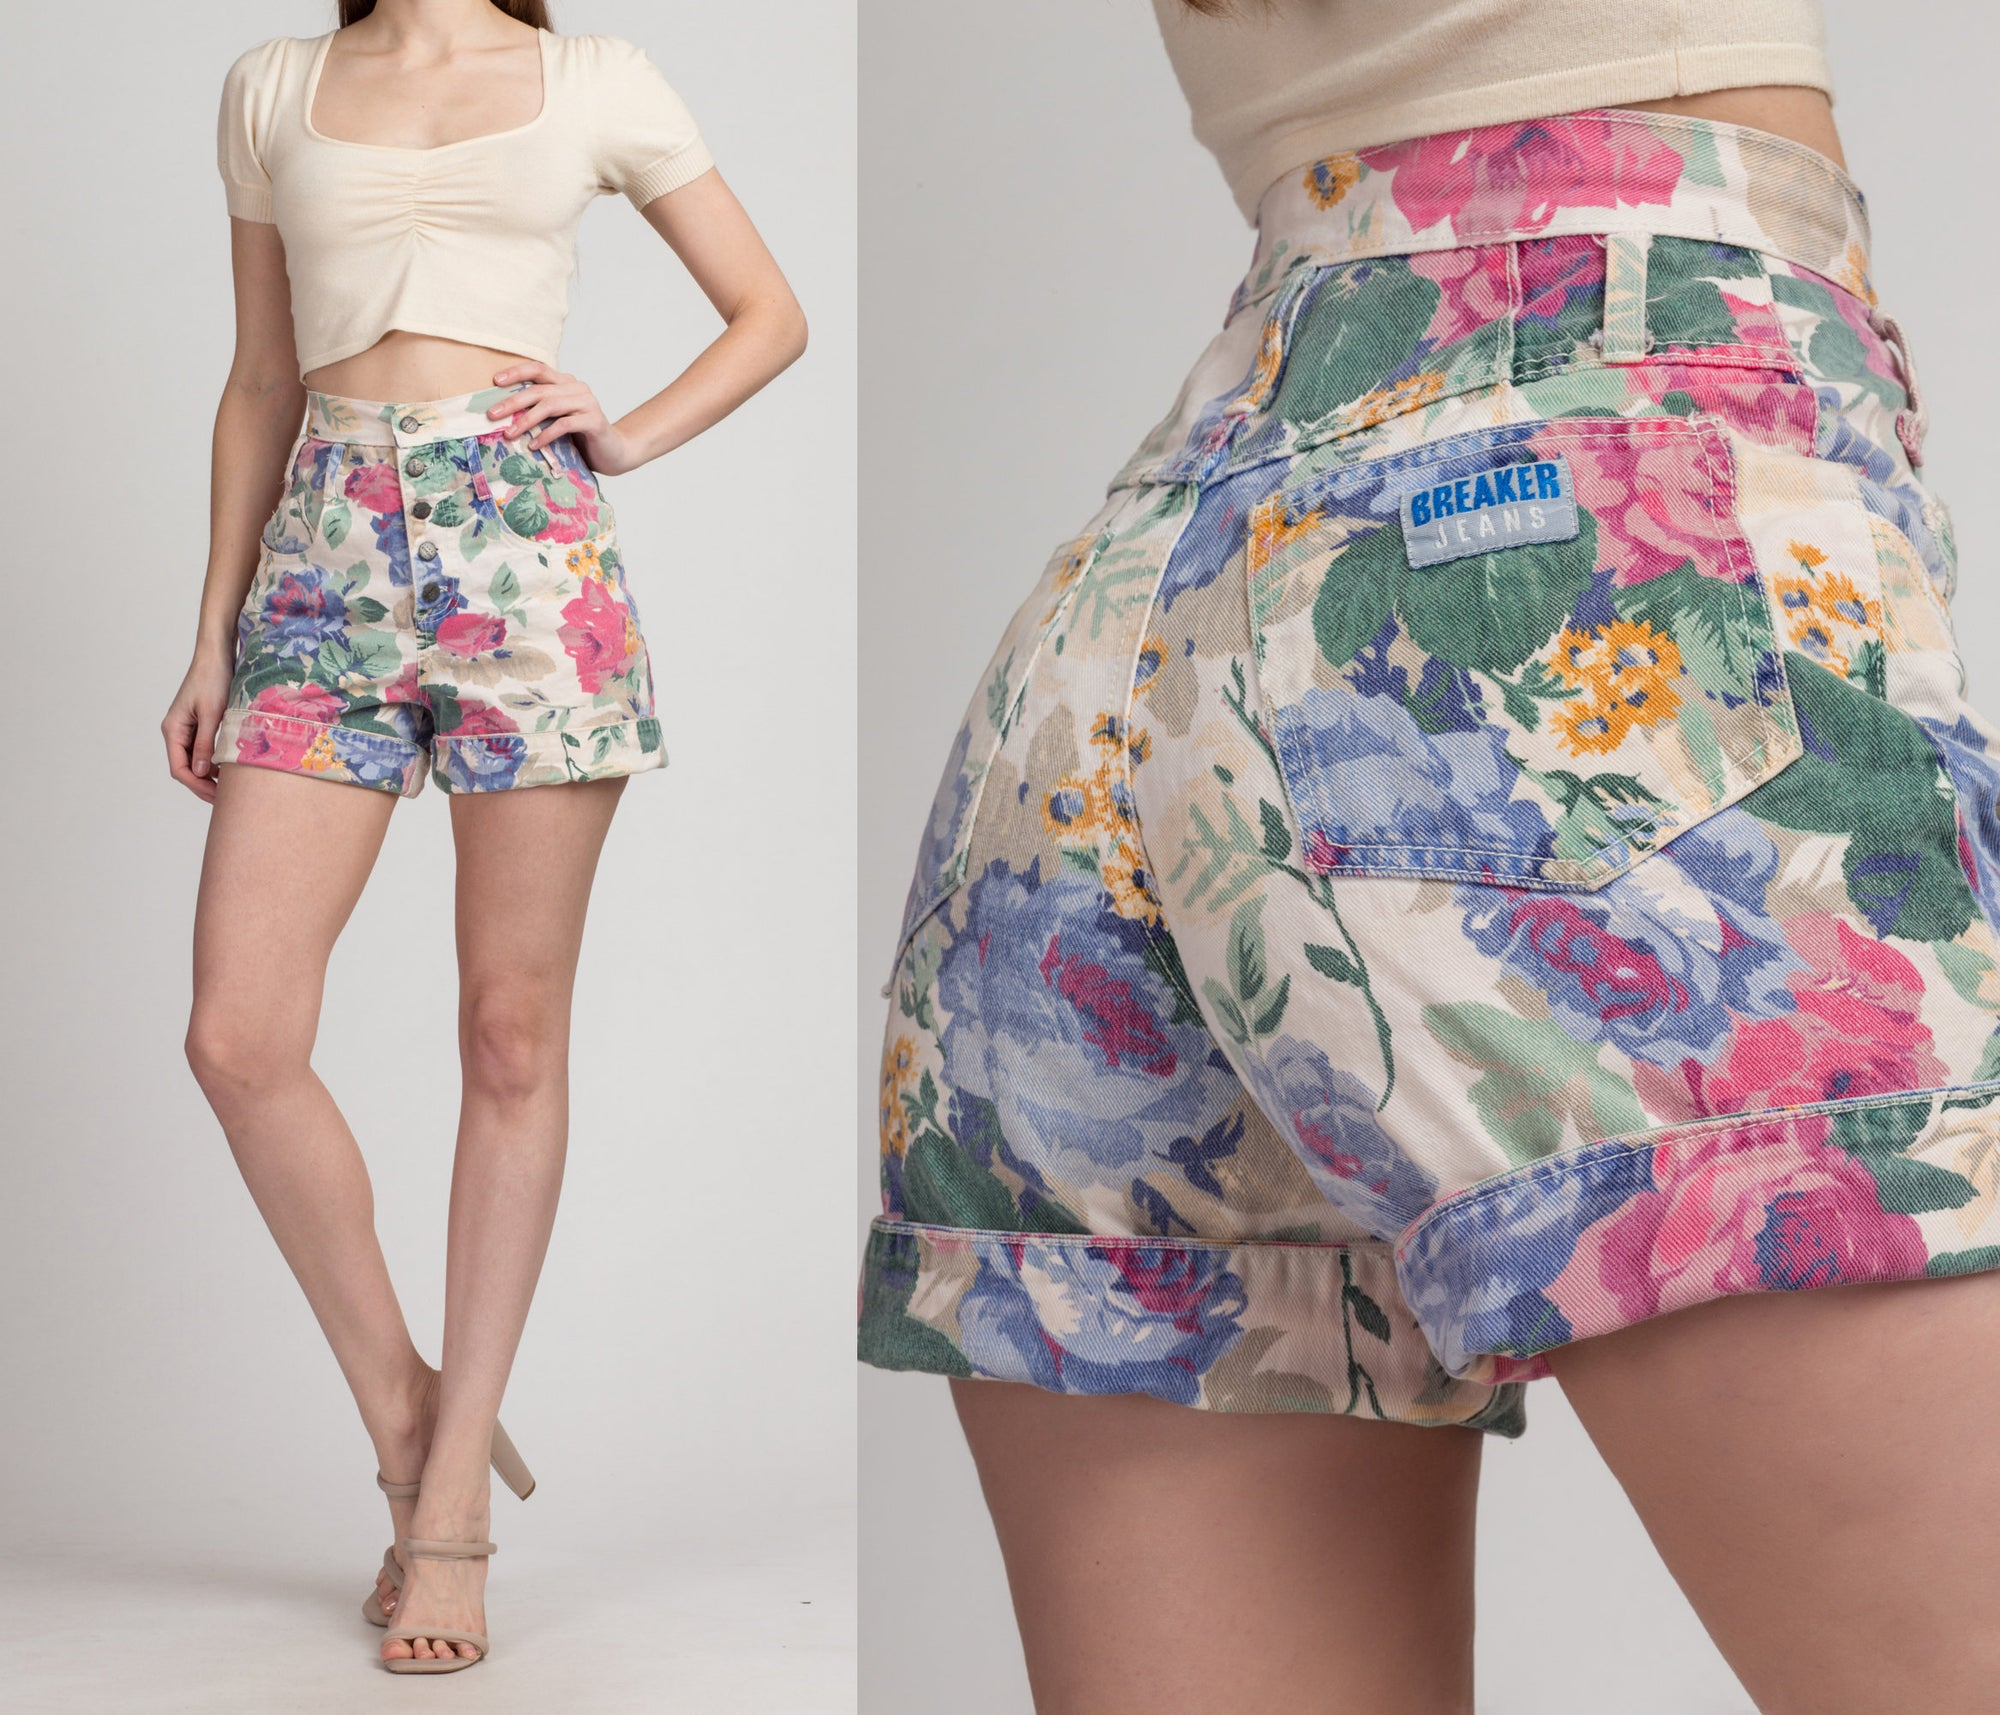 80s High Waist Floral Jean Shorts - Extra Small, 25"